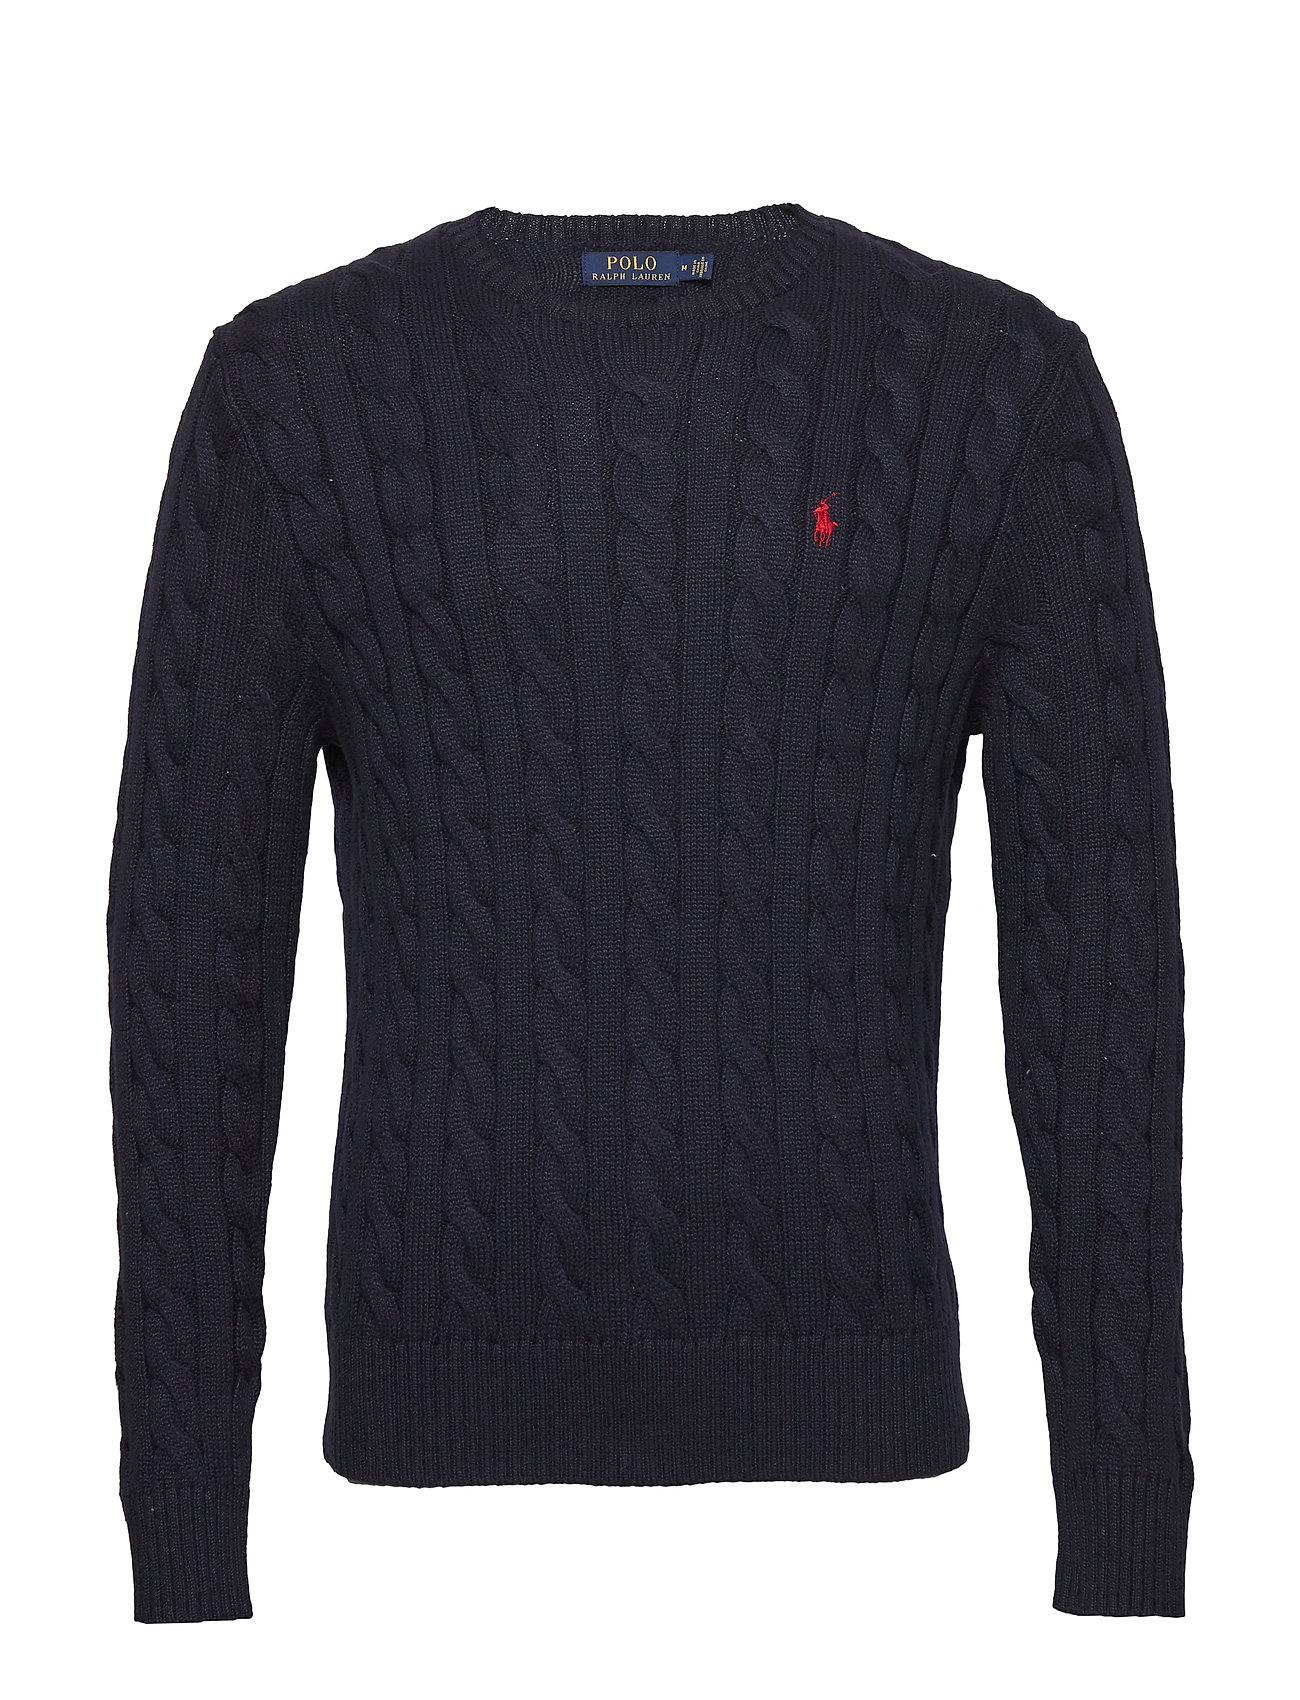 Polo Ralph Lauren Cable-Knit Cotton Sweater - HUNTER NAVY